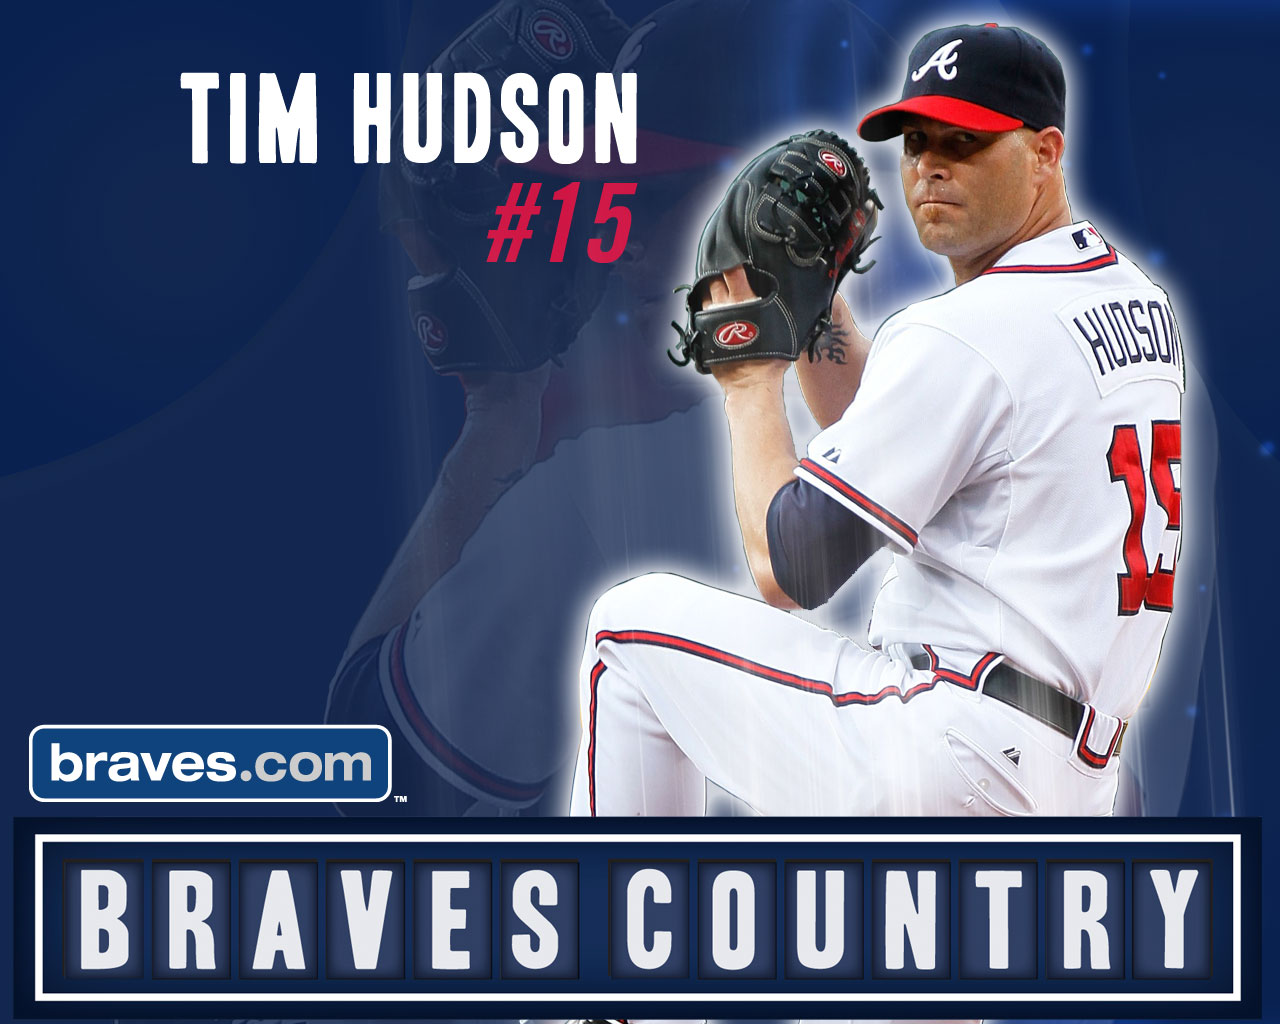 Wallpapers Tim Hudson Braves Wallpaper 1280x1024